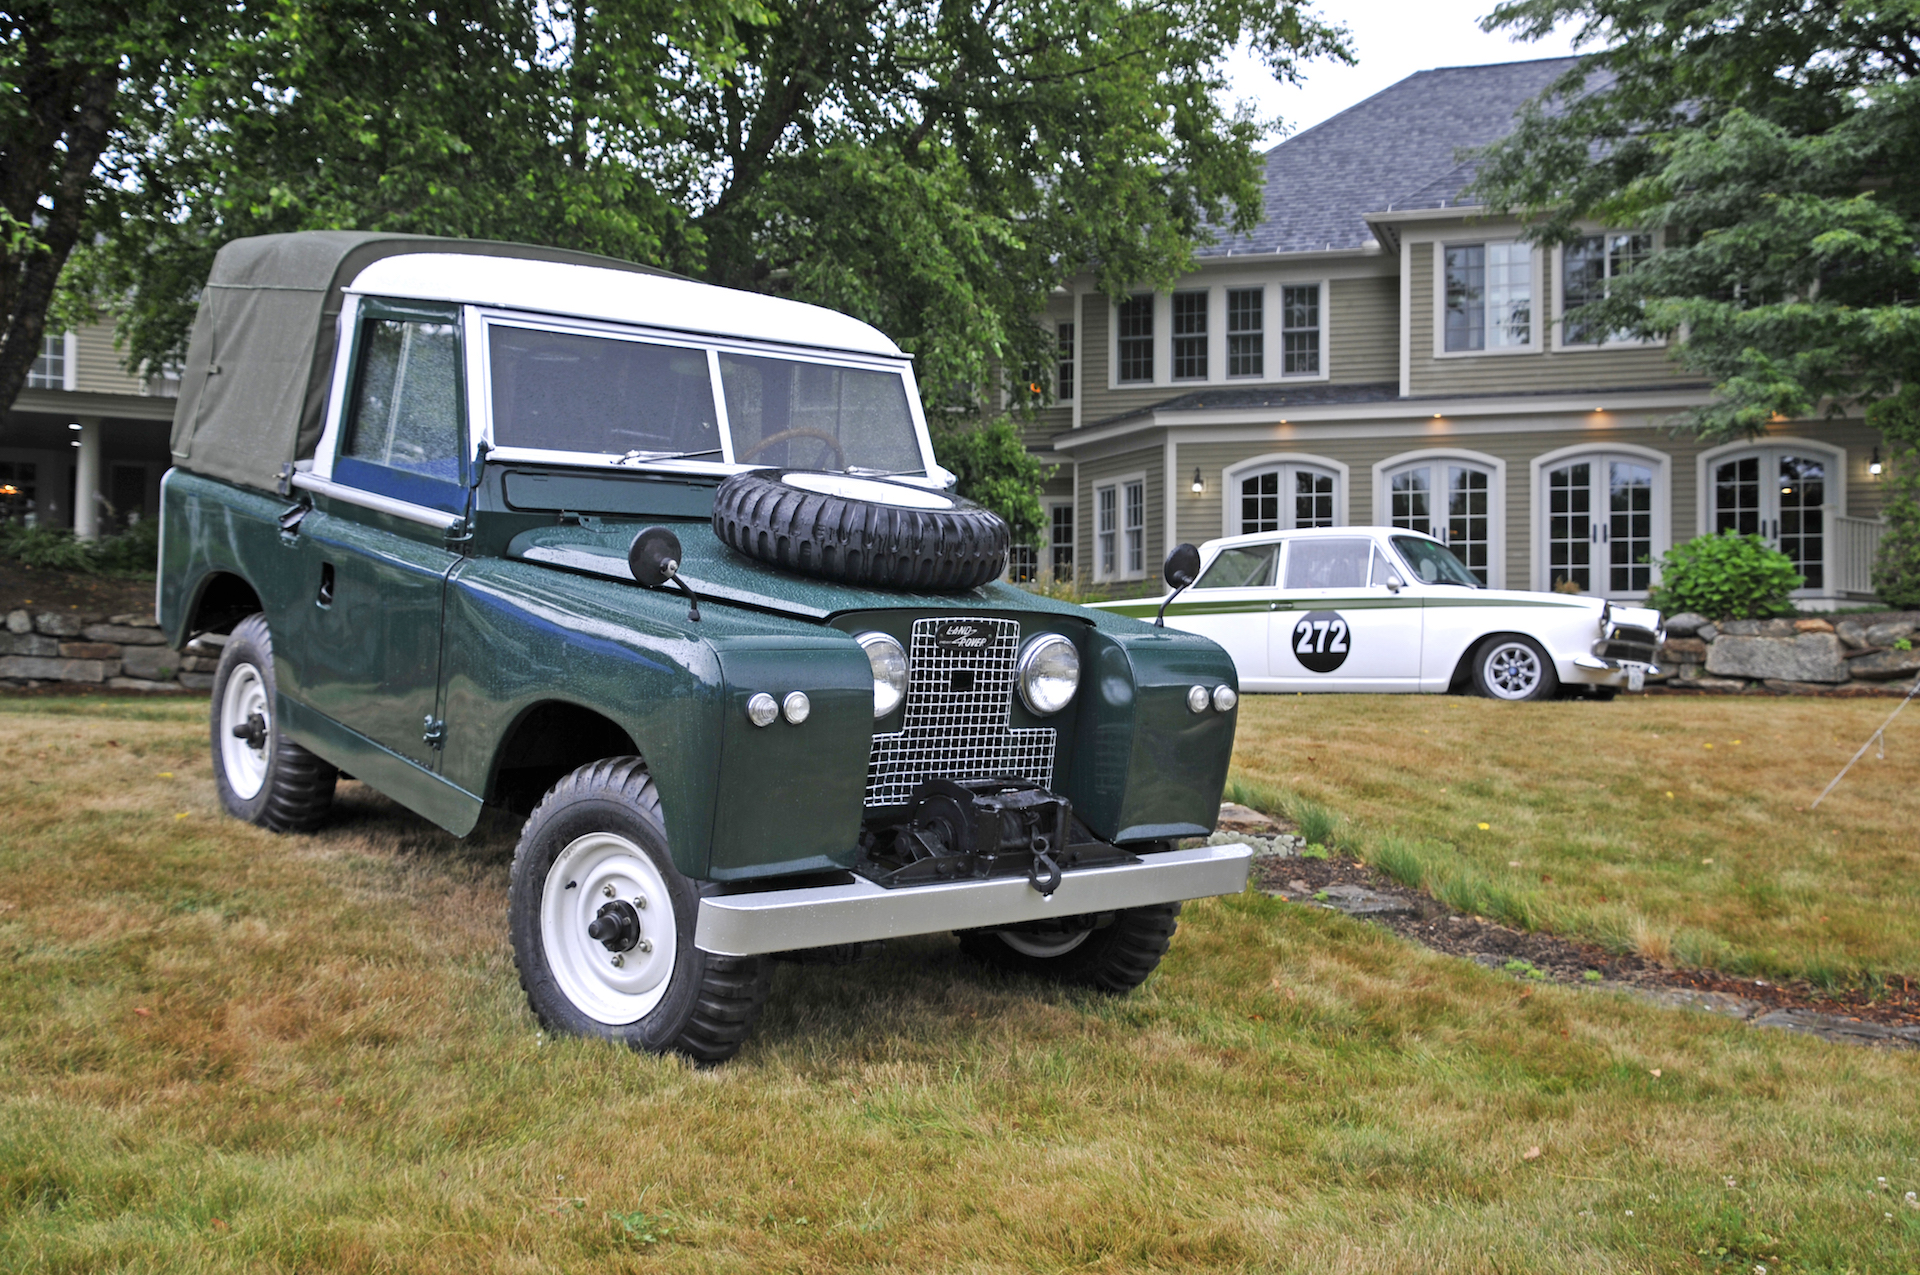 Vintage land rover in front of house.jpg